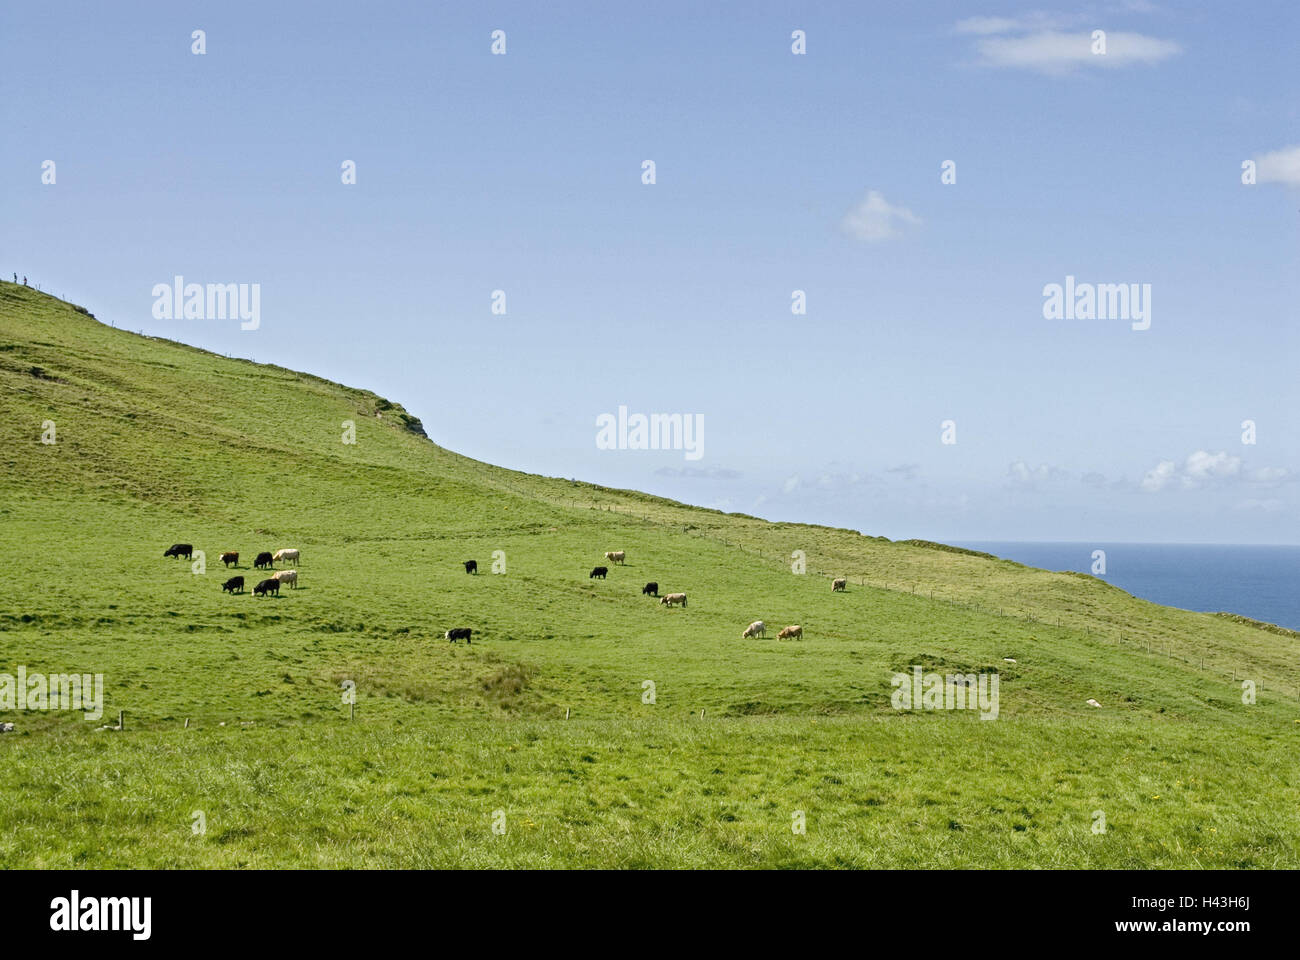 Ireland, Munster, Clare, Cliffs Moher, pastures, meadows, cows, scenery, sea, green, pastureland, animals, cow's - Stock Image